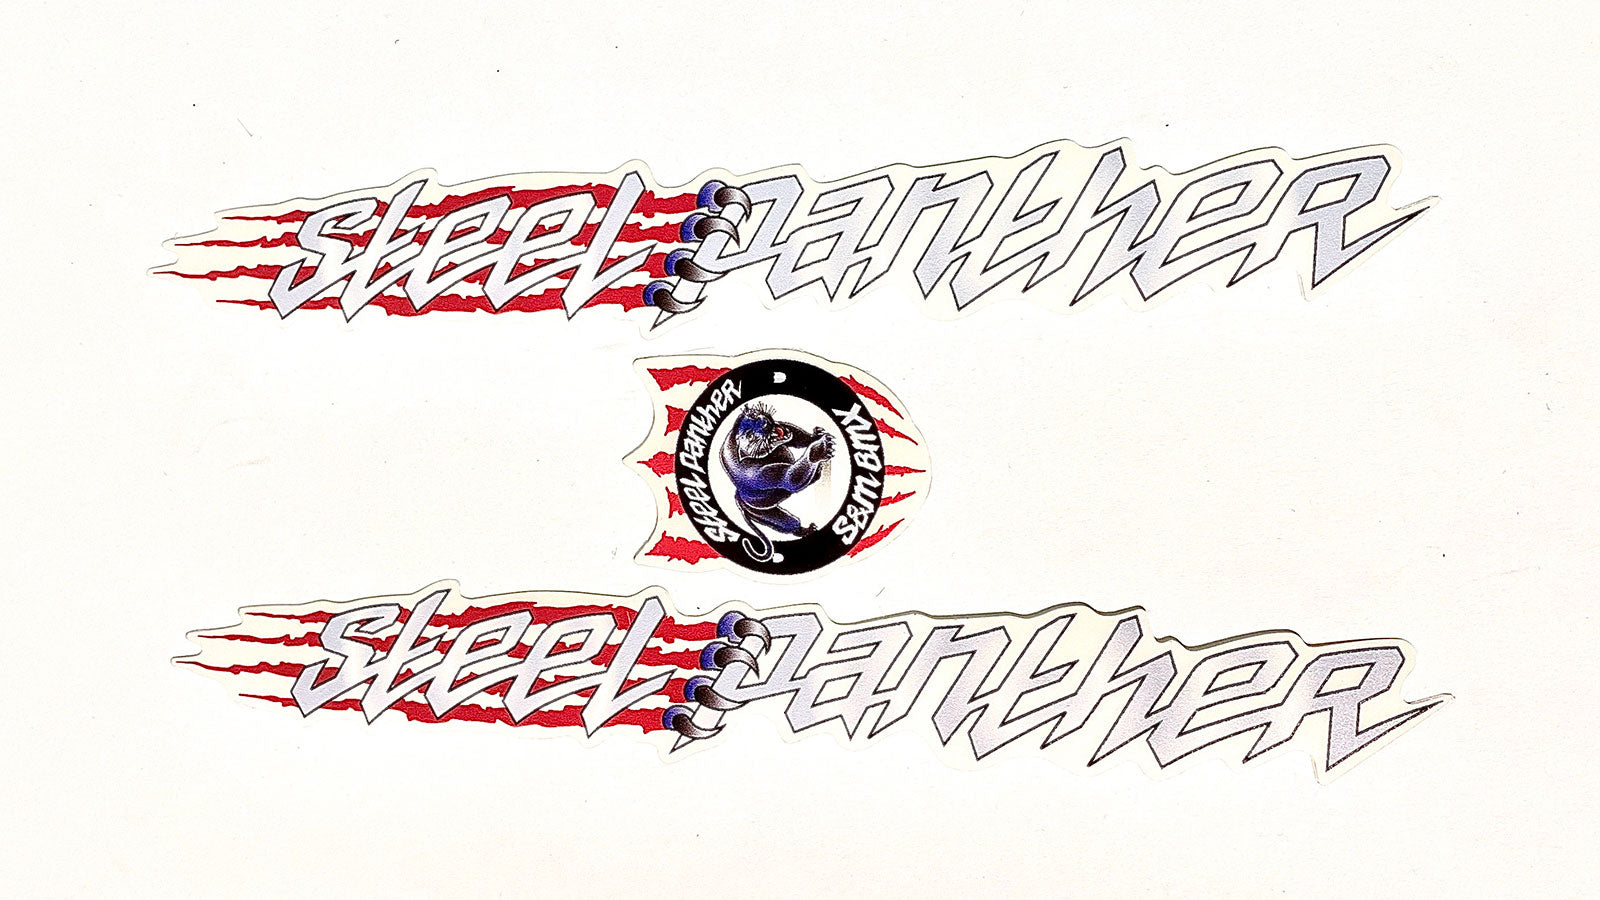 S&M Steel Panther BMX Frame Decal Set